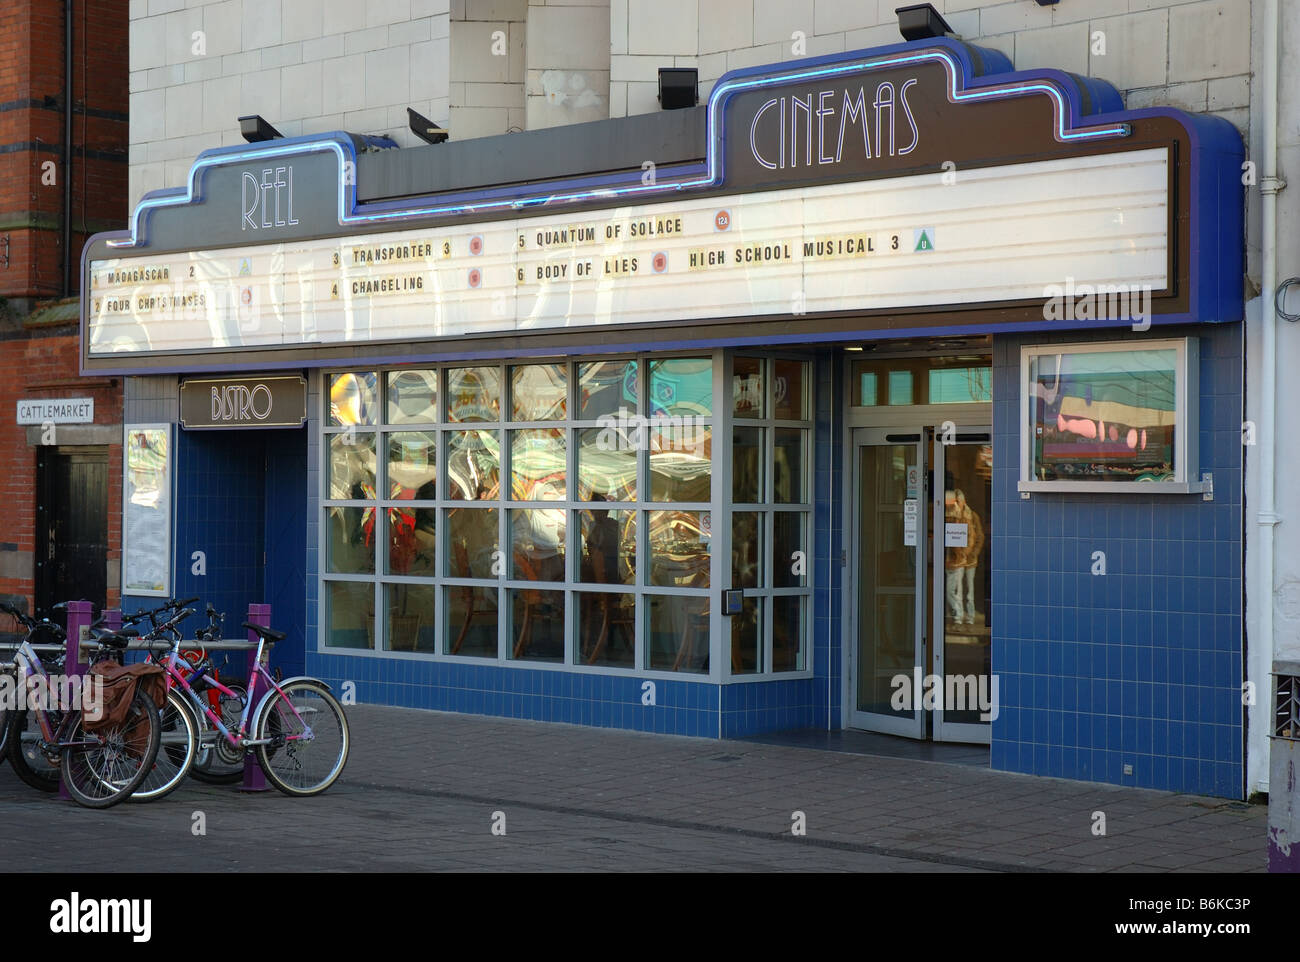 Reel Cinema, Loughborough, Leicestershire, England, Uk - Stock Image